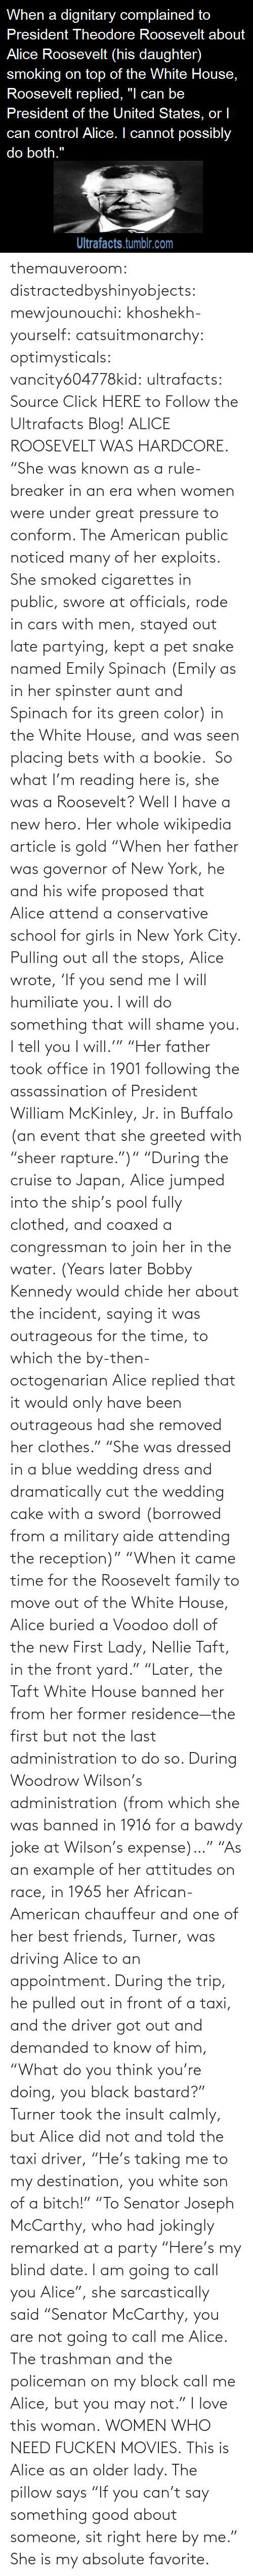 "Think You: themauveroom: distractedbyshinyobjects:  mewjounouchi:  khoshekh-yourself:  catsuitmonarchy:  optimysticals:  vancity604778kid:  ultrafacts:     Source Click HERE to Follow the Ultrafacts Blog!     ALICE ROOSEVELT WAS HARDCORE. ""She was known as a rule-breaker in an era when women were under great pressure to conform. The American public noticed many of her exploits. She smoked cigarettes in public, swore at officials, rode in cars with men, stayed out late partying, kept a pet snake named Emily Spinach (Emily as in her spinster aunt and Spinach for its green color) in the White House, and was seen placing bets with a bookie.    So what I'm reading here is, she was a Roosevelt?  Well I have a new hero.  Her whole wikipedia article is gold ""When her father was governor of New York, he and his wife proposed that Alice attend a conservative school for girls in New York City. Pulling out all the stops, Alice wrote, 'If you send me I will humiliate you. I will do something that will shame you. I tell you I will.'"" ""Her father took office in 1901 following the assassination of President William McKinley, Jr. in Buffalo (an event that she greeted with ""sheer rapture."")"" ""During the cruise to Japan, Alice jumped into the ship's pool fully clothed, and coaxed a congressman to join her in the water. (Years later Bobby Kennedy would chide her about the incident, saying it was outrageous for the time, to which the by-then-octogenarian Alice replied that it would only have been outrageous had she removed her clothes."" ""She was dressed in a blue wedding dress and dramatically cut the wedding cake with a sword (borrowed from a military aide attending the reception)"" ""When it came time for the Roosevelt family to move out of the White House, Alice buried a Voodoo doll of the new First Lady, Nellie Taft, in the front yard."" ""Later, the Taft White House banned her from her former residence—the first but not the last administration to do so. During Woodrow Wilson's administration (from which she was banned in 1916 for a bawdy joke at Wilson's expense)…"" ""As an example of her attitudes on race, in 1965 her African-American chauffeur and one of her best friends, Turner, was driving Alice to an appointment. During the trip, he pulled out in front of a taxi, and the driver got out and demanded to know of him, ""What do you think you're doing, you black bastard?"" Turner took the insult calmly, but Alice did not and told the taxi driver, ""He's taking me to my destination, you white son of a bitch!"" ""To Senator Joseph McCarthy, who had jokingly remarked at a party ""Here's my blind date. I am going to call you Alice"", she sarcastically said ""Senator McCarthy, you are not going to call me Alice. The trashman and the policeman on my block call me Alice, but you may not.""  I love this woman.  WOMEN WHO NEED FUCKEN MOVIES.   This is Alice as an older lady. The pillow says ""If you can't say something good about someone, sit right here by me.""  She is my absolute favorite."